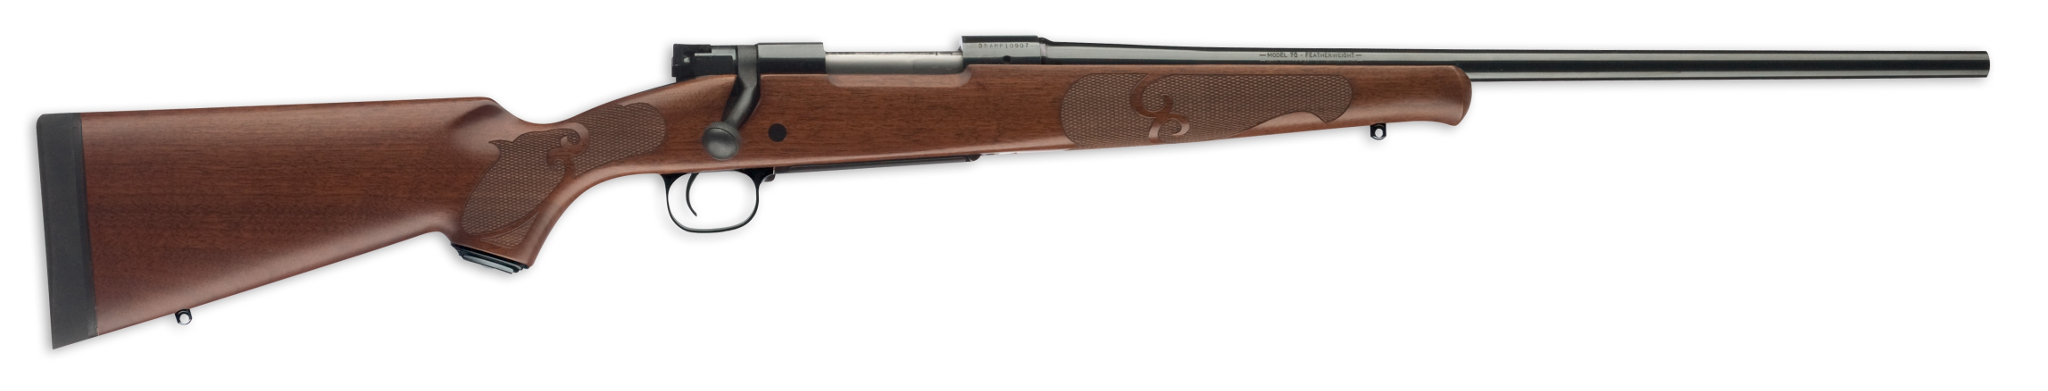 Winchester Model 70 Featherweight Compact rifle